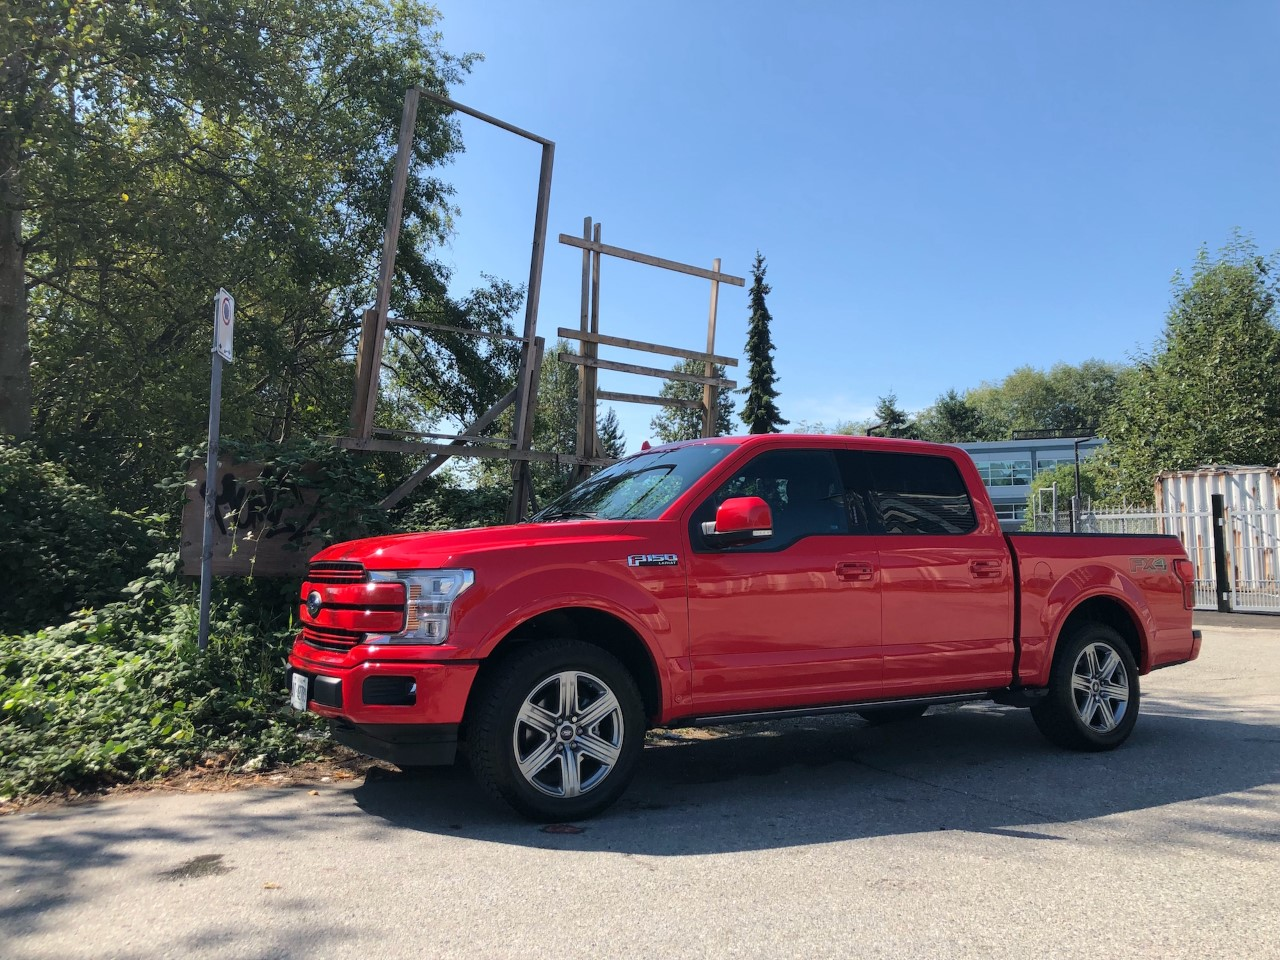 Ford F-150 2.7L EcoBoost V6 engine